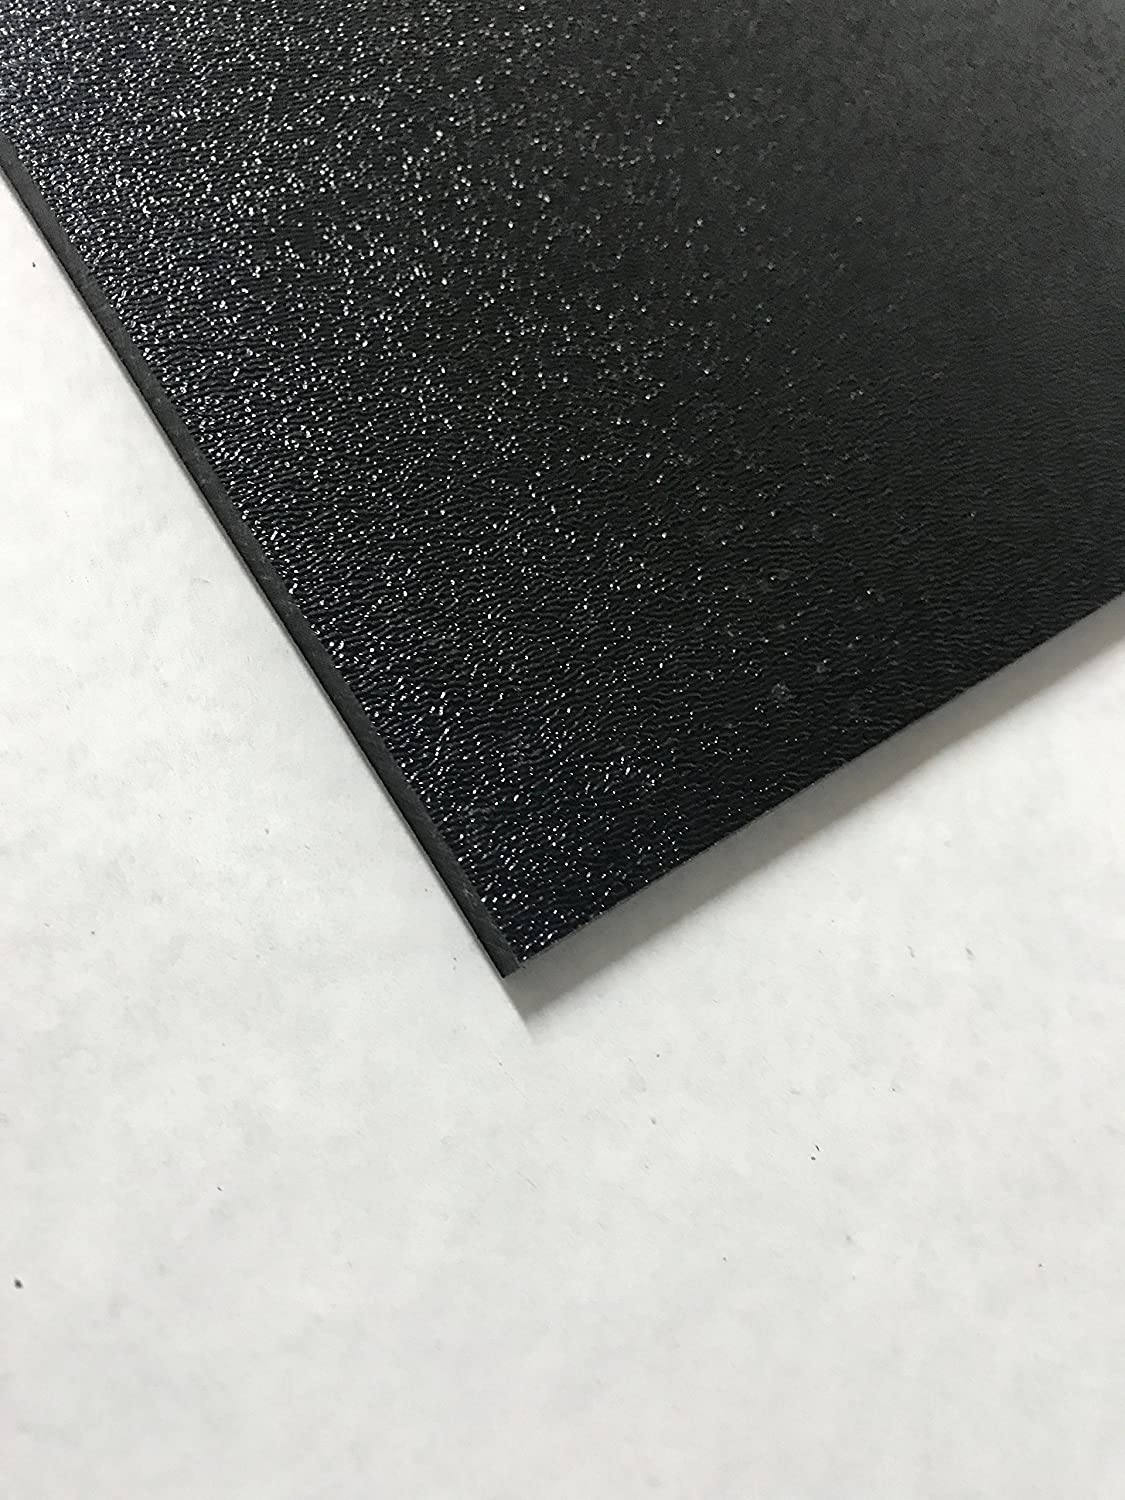 "ABS Black Plastic Sheet 1//4 x 12 x 12/"" Textured 1 Side Vacuum Forming Pack of 8"